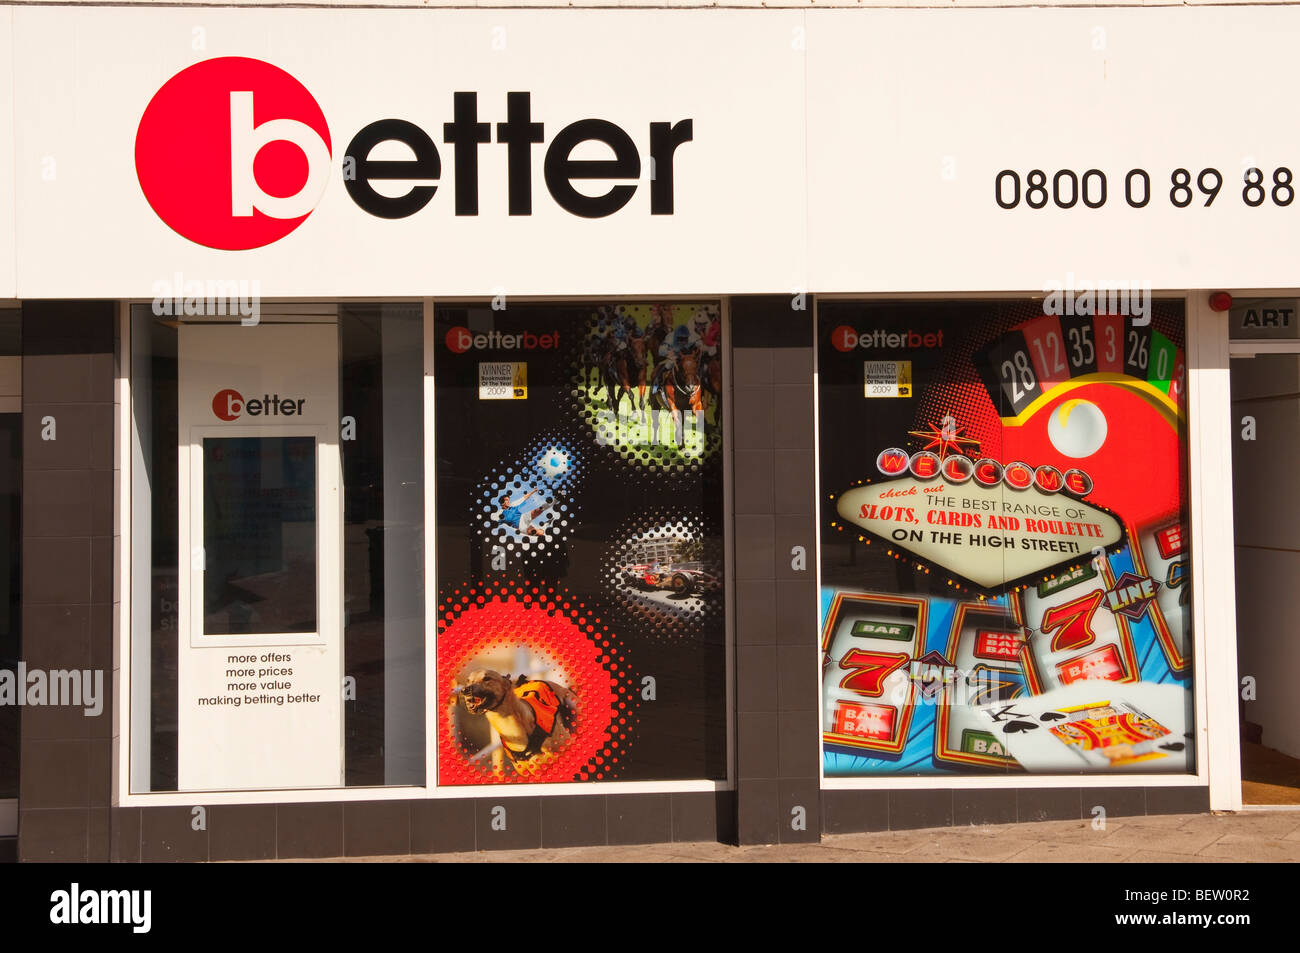 Better bookmakers in Norwich,Norfolk,Uk - Stock Image